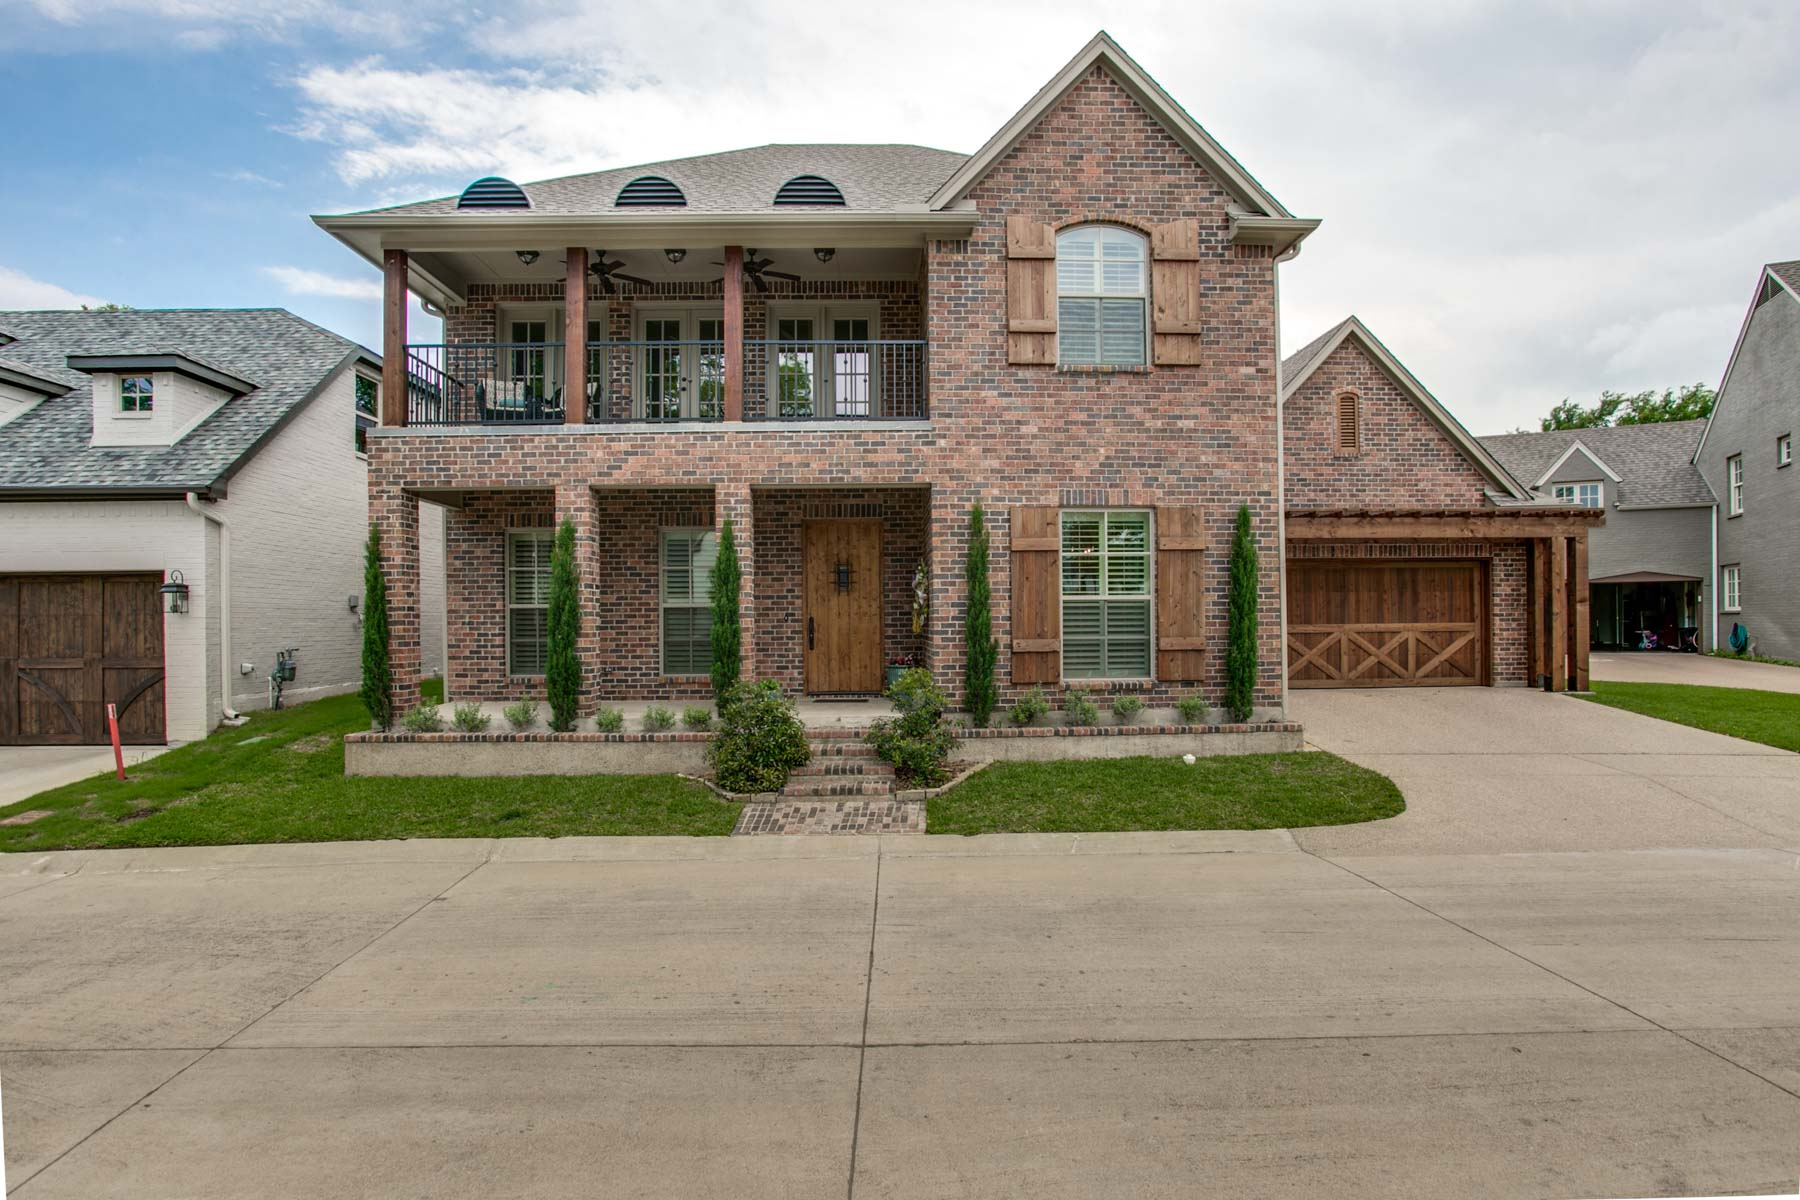 Single Family Home for Sale at Gated Traditional in River Elm 3052 Elm River Drive Fort Worth, Texas, 76116 United States